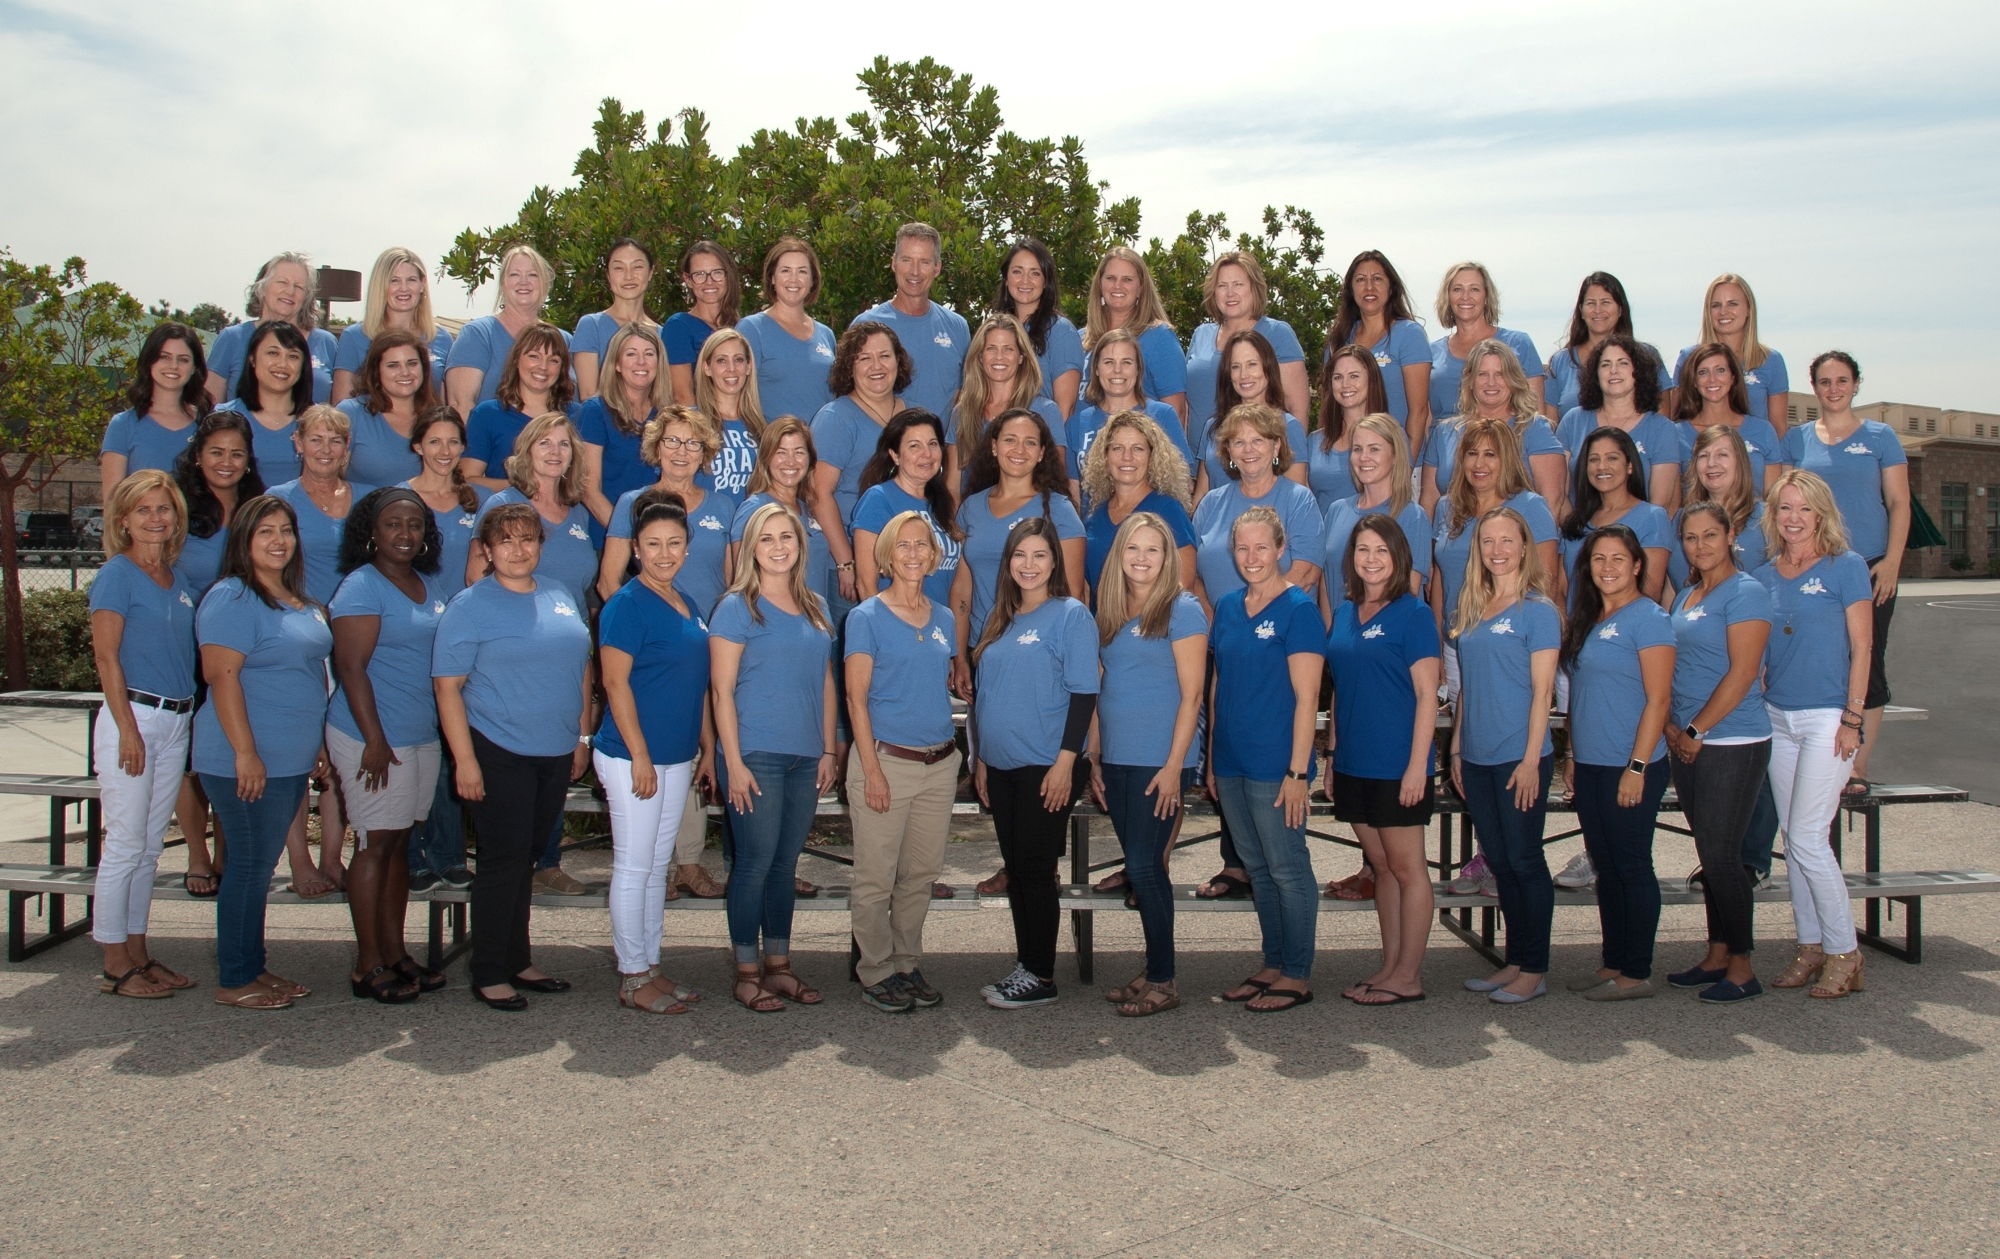 Joli Ann staff photo for the 2018-2019 school year